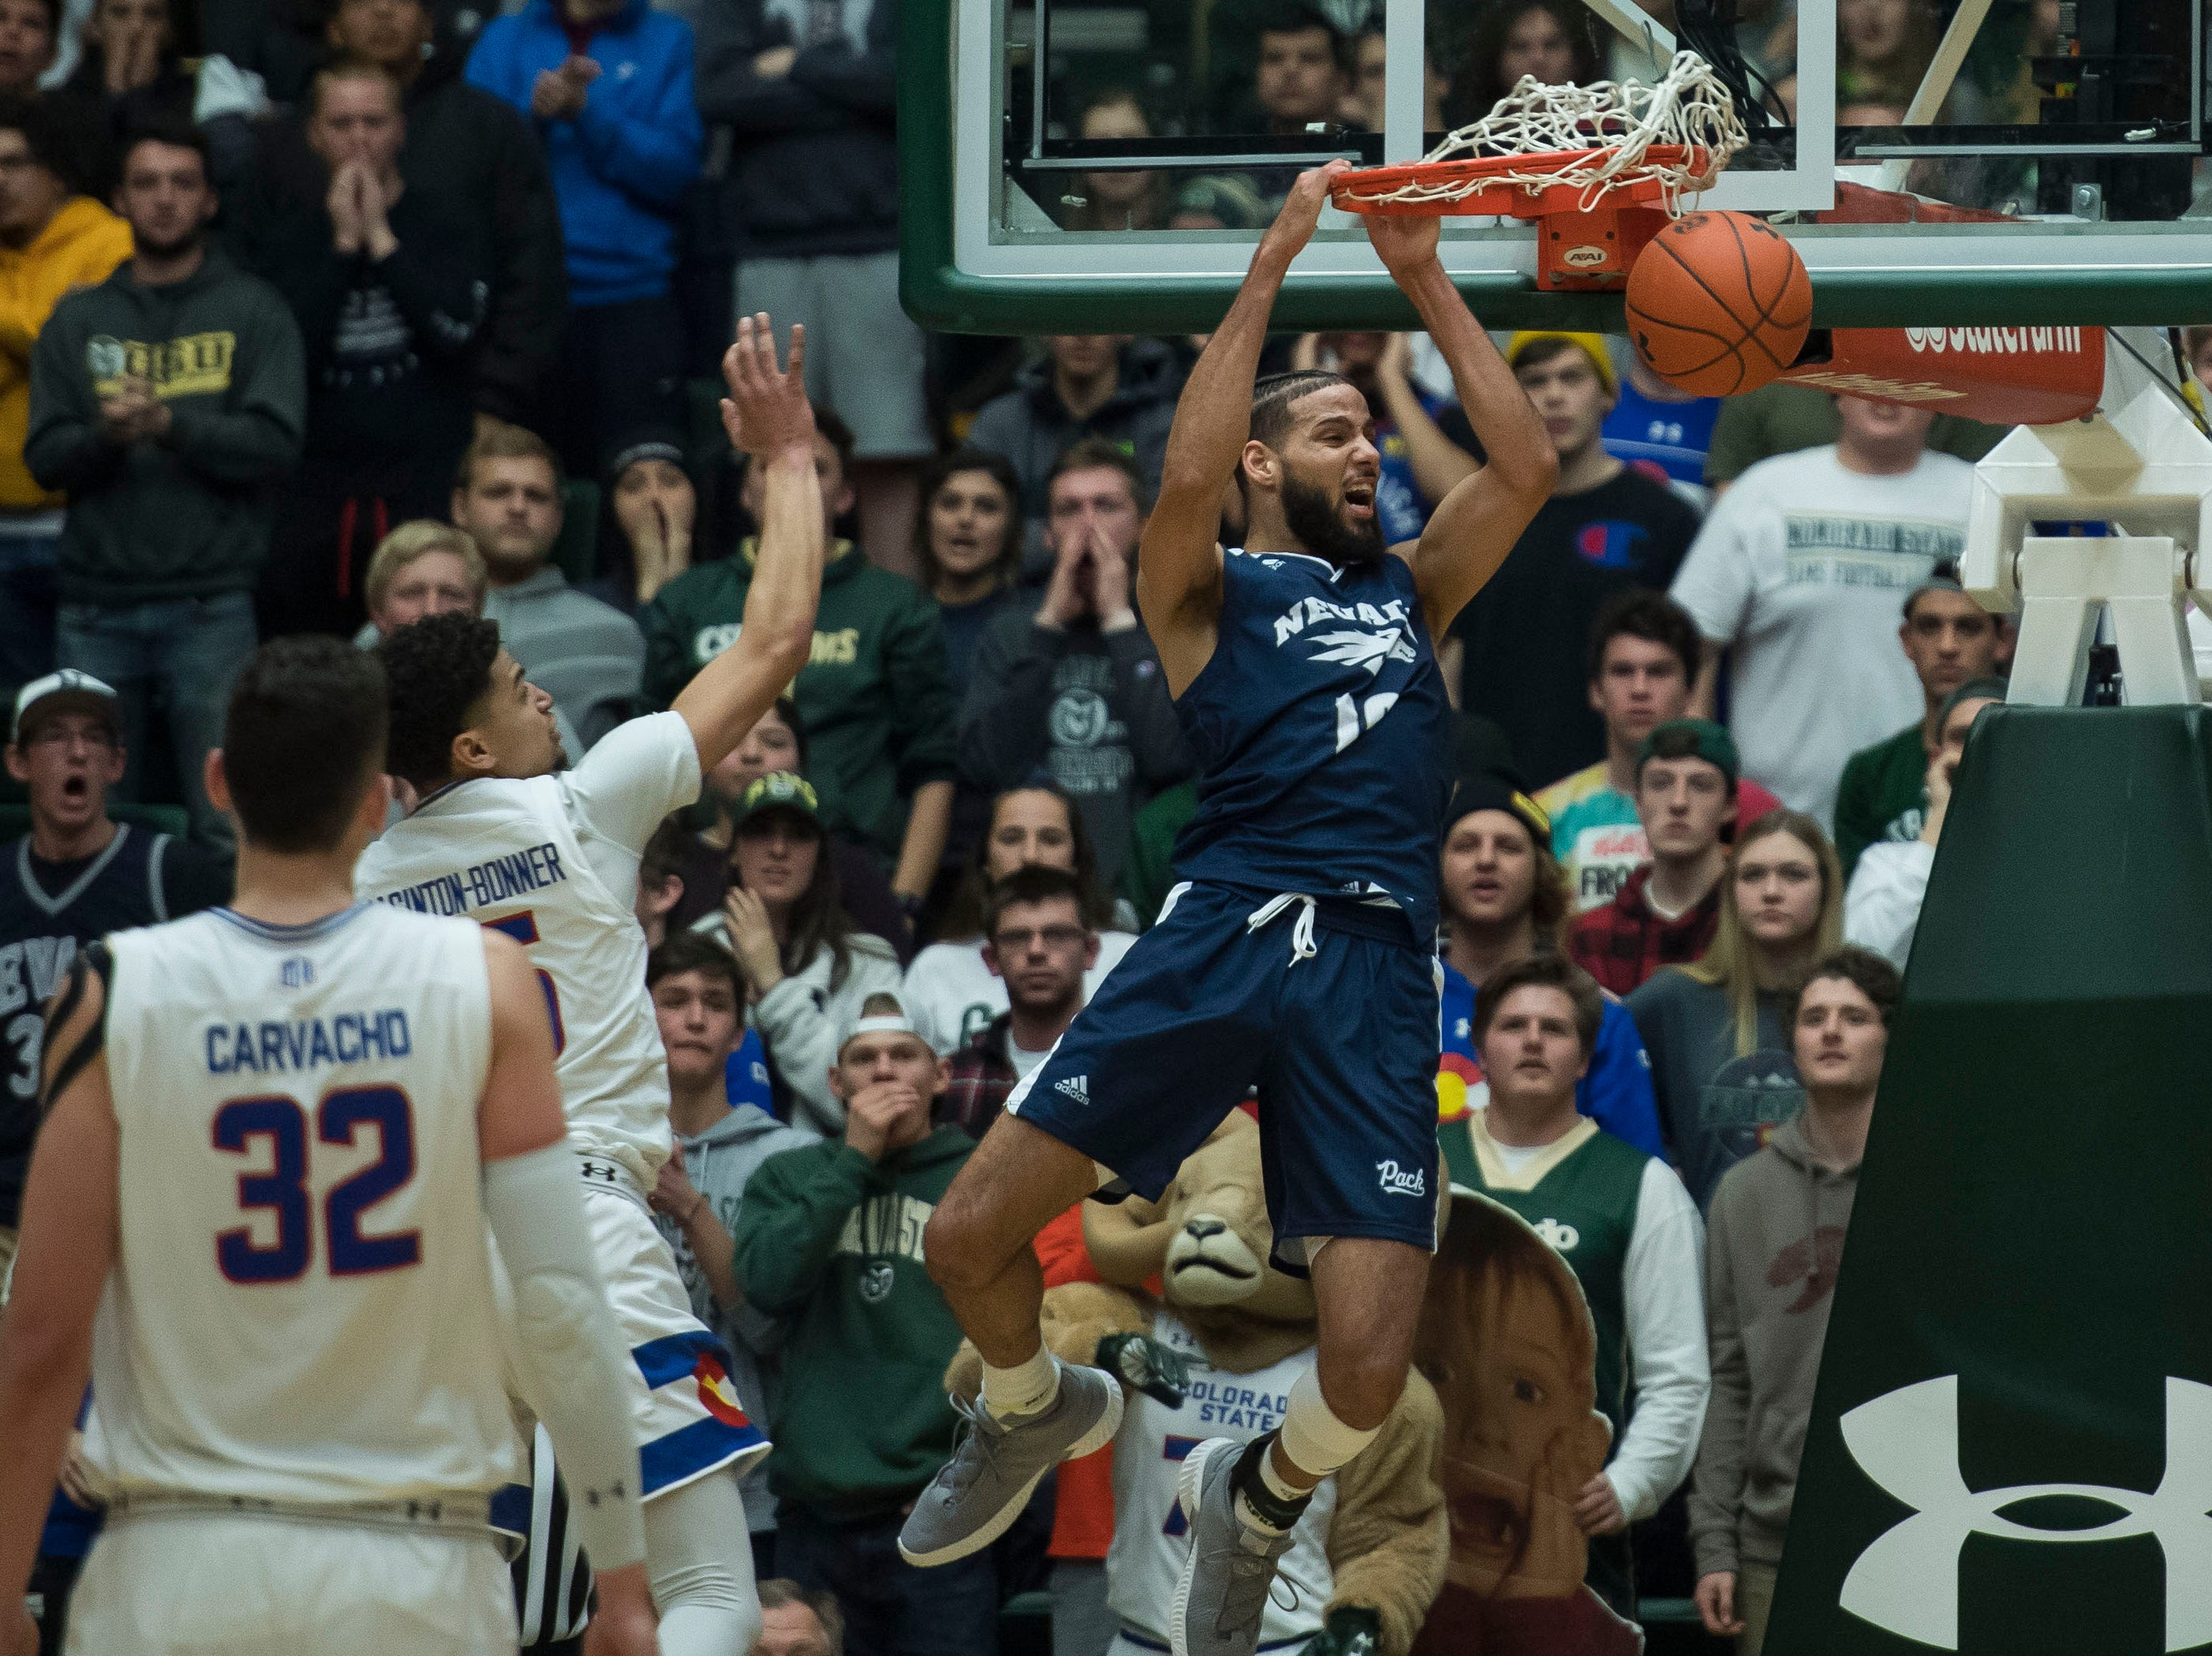 Nevada senior guard Caleb Martin (10) dunks during a game against the Colorado State University on Wednesday, Feb. 6, 2019, at Moby Arena Fort Collins, Colo.